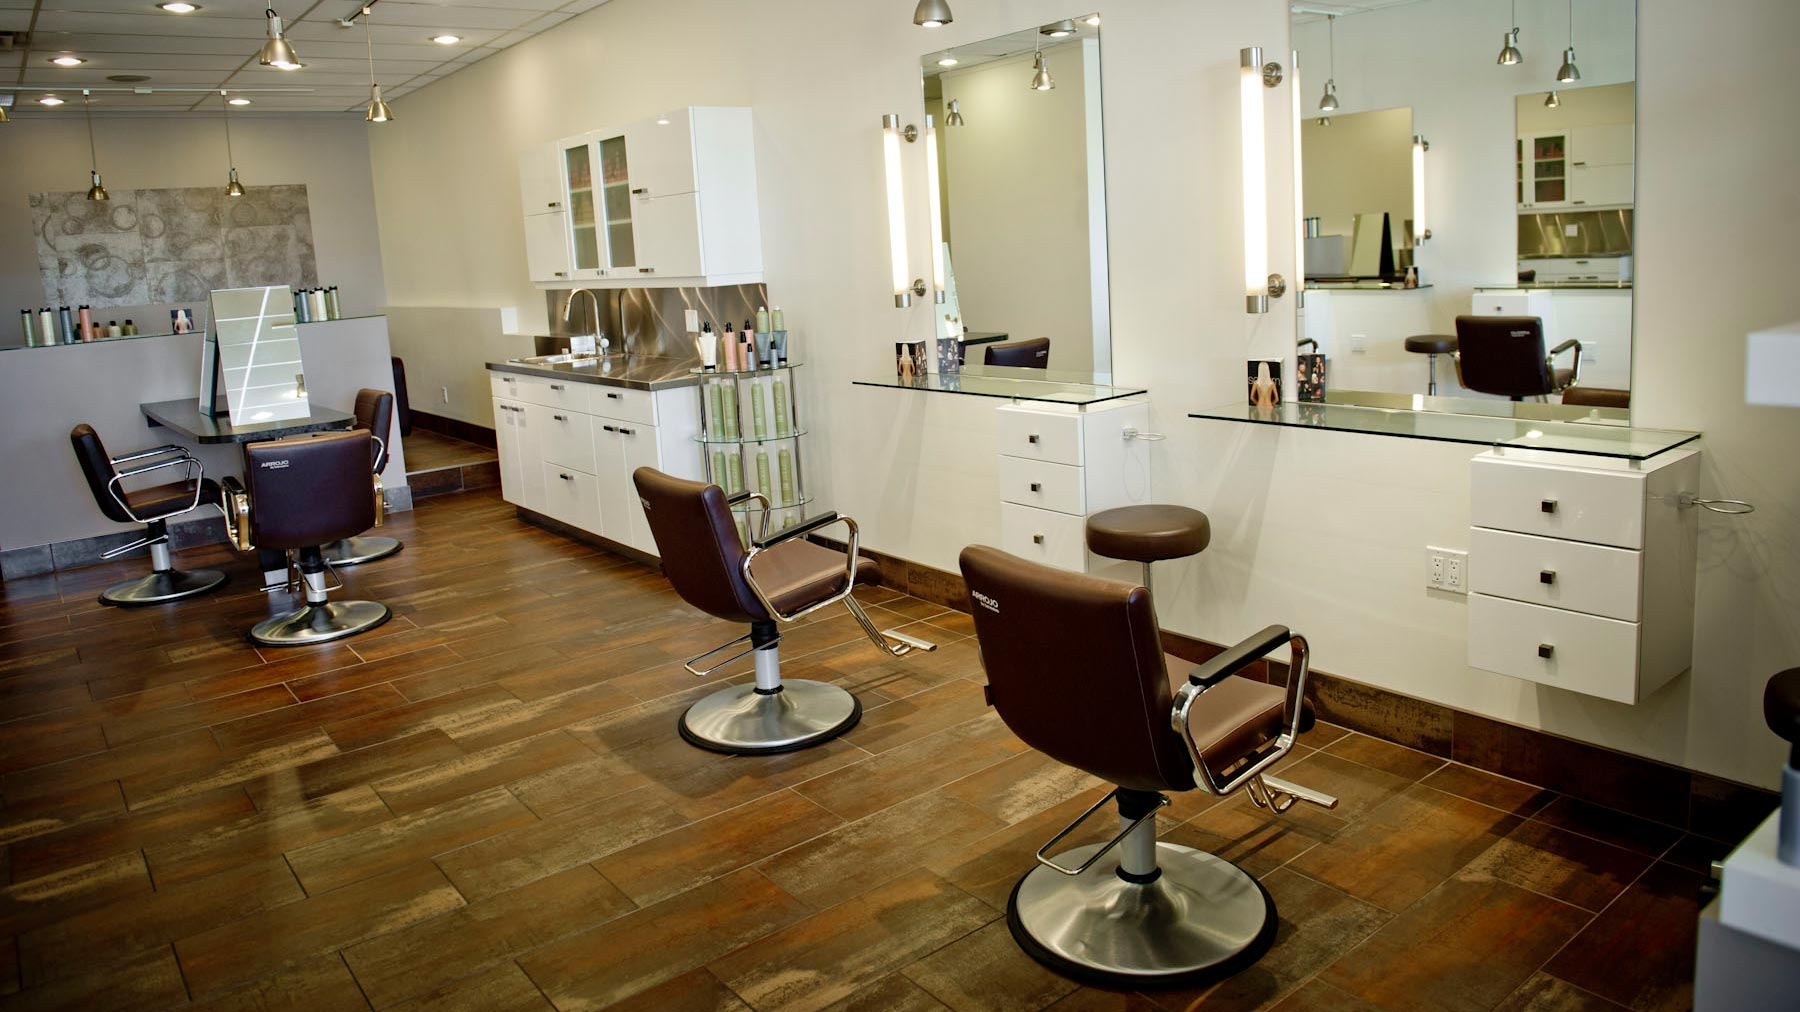 pei hair salons and hairdressers pei business directory info and updates. Black Bedroom Furniture Sets. Home Design Ideas